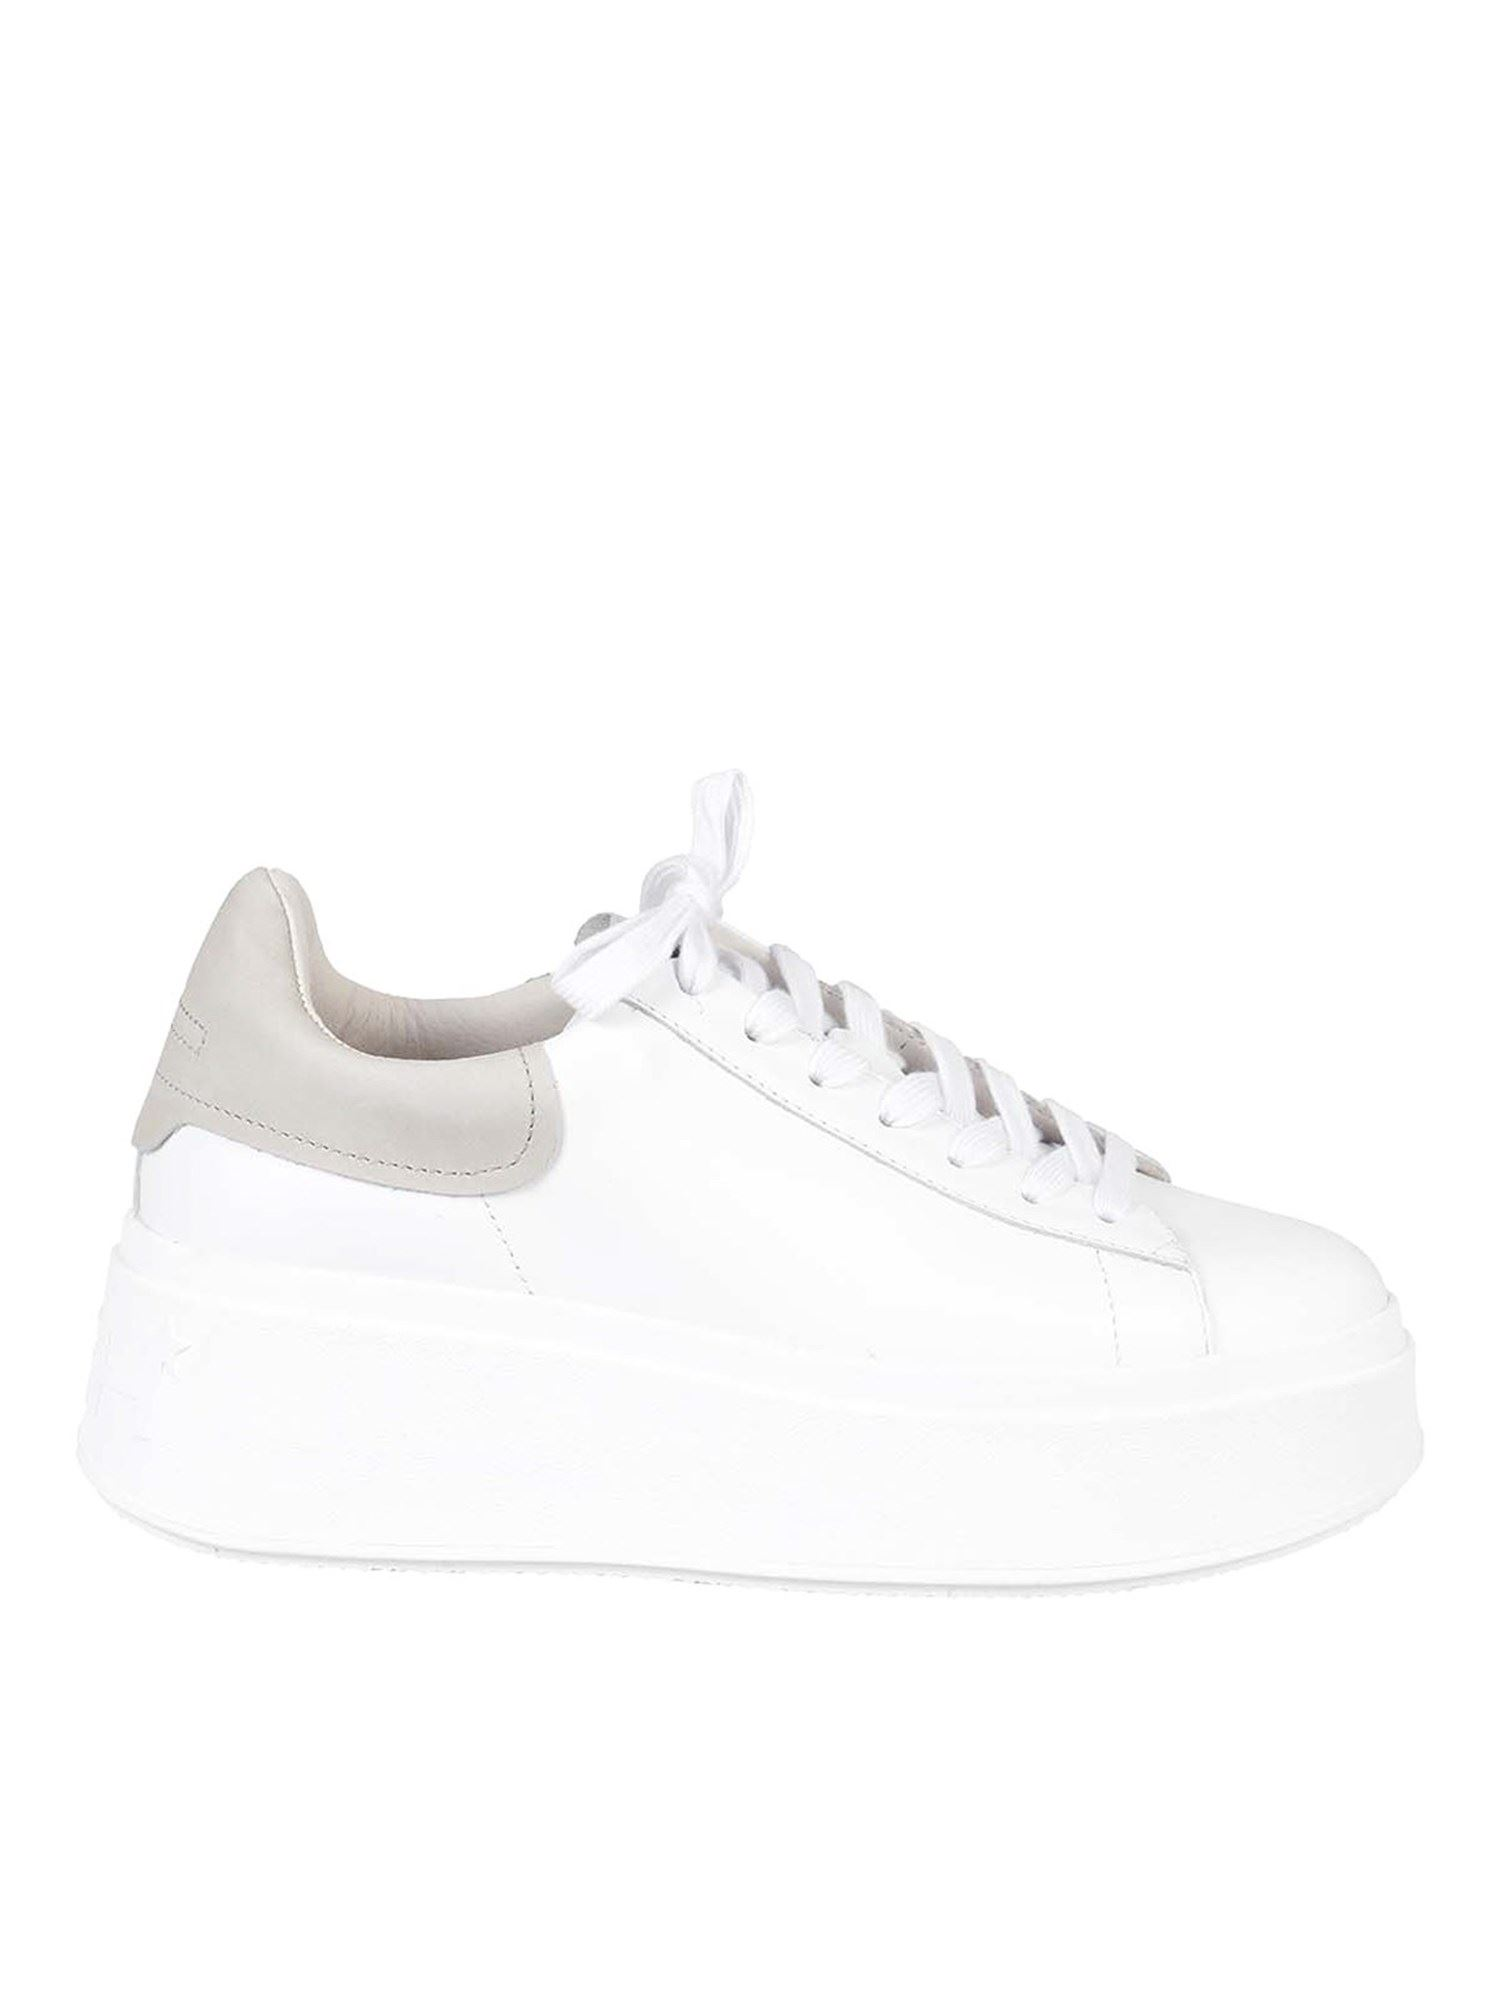 Ash Platforms MOBY SNEAKERS IN WHITE